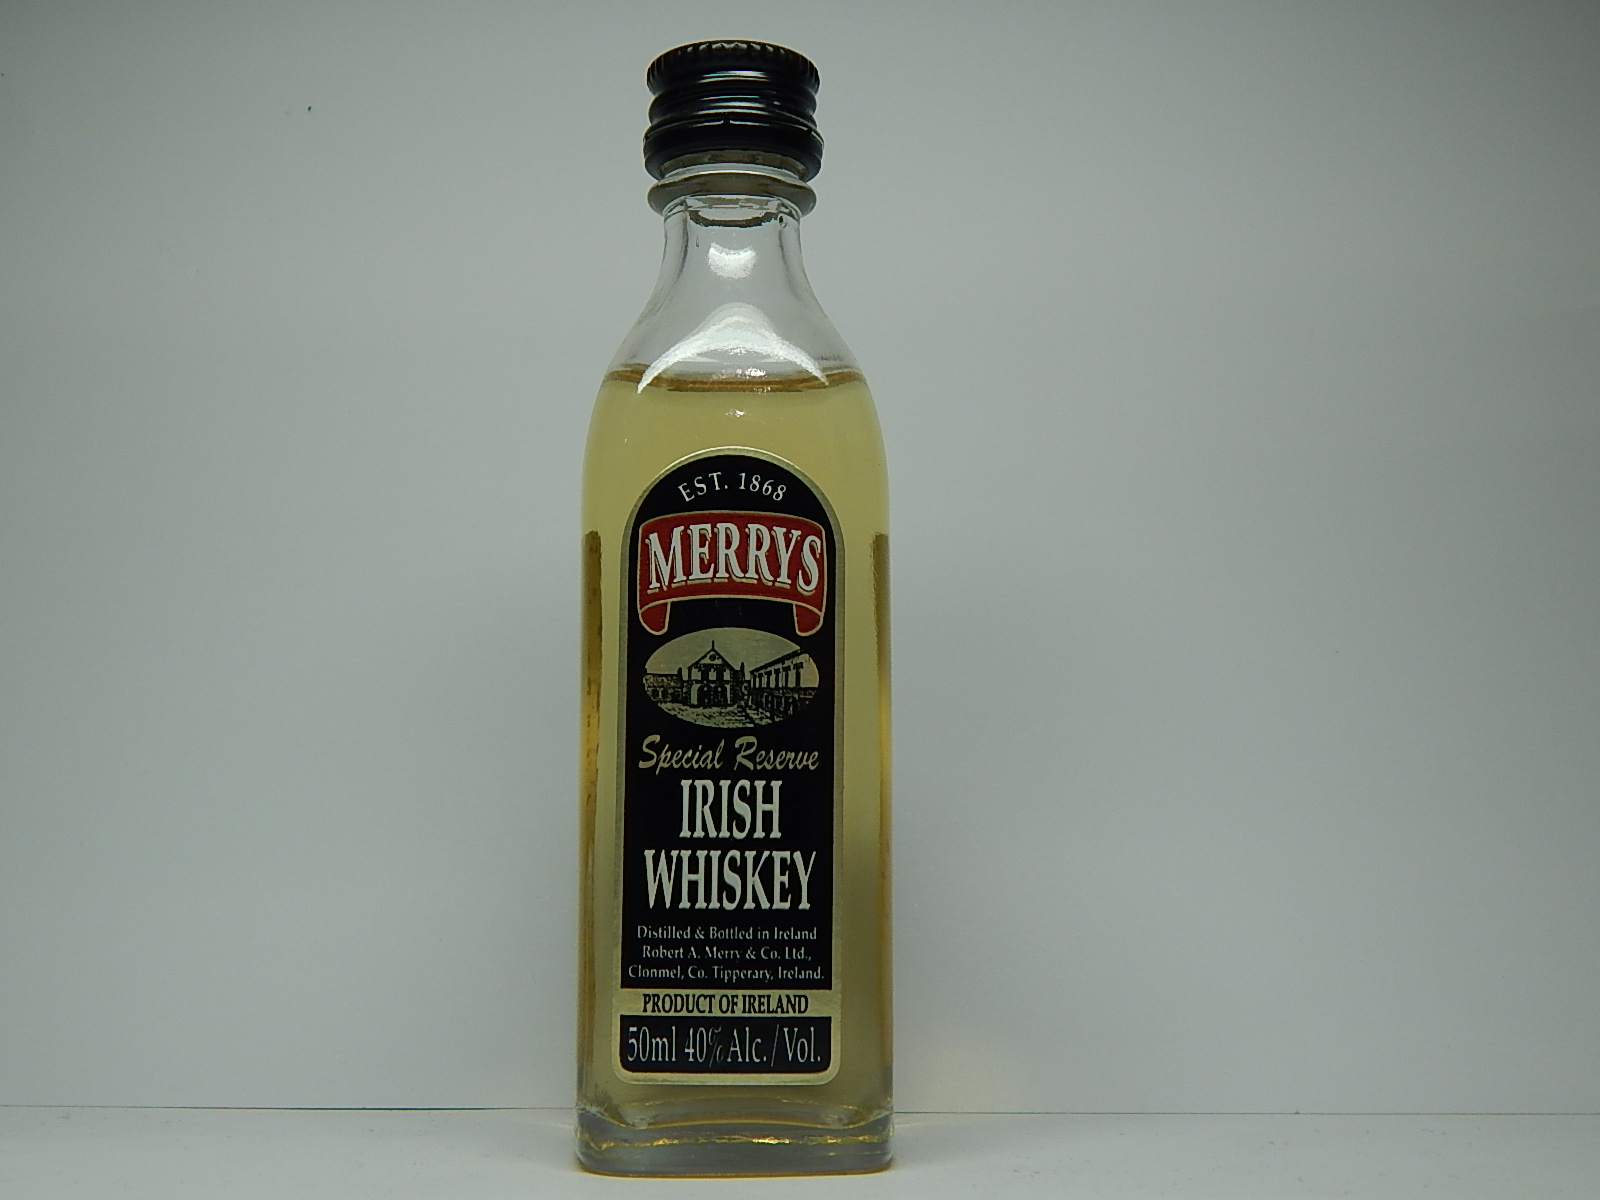 MERRYS Special Reserve Irish Whiskey